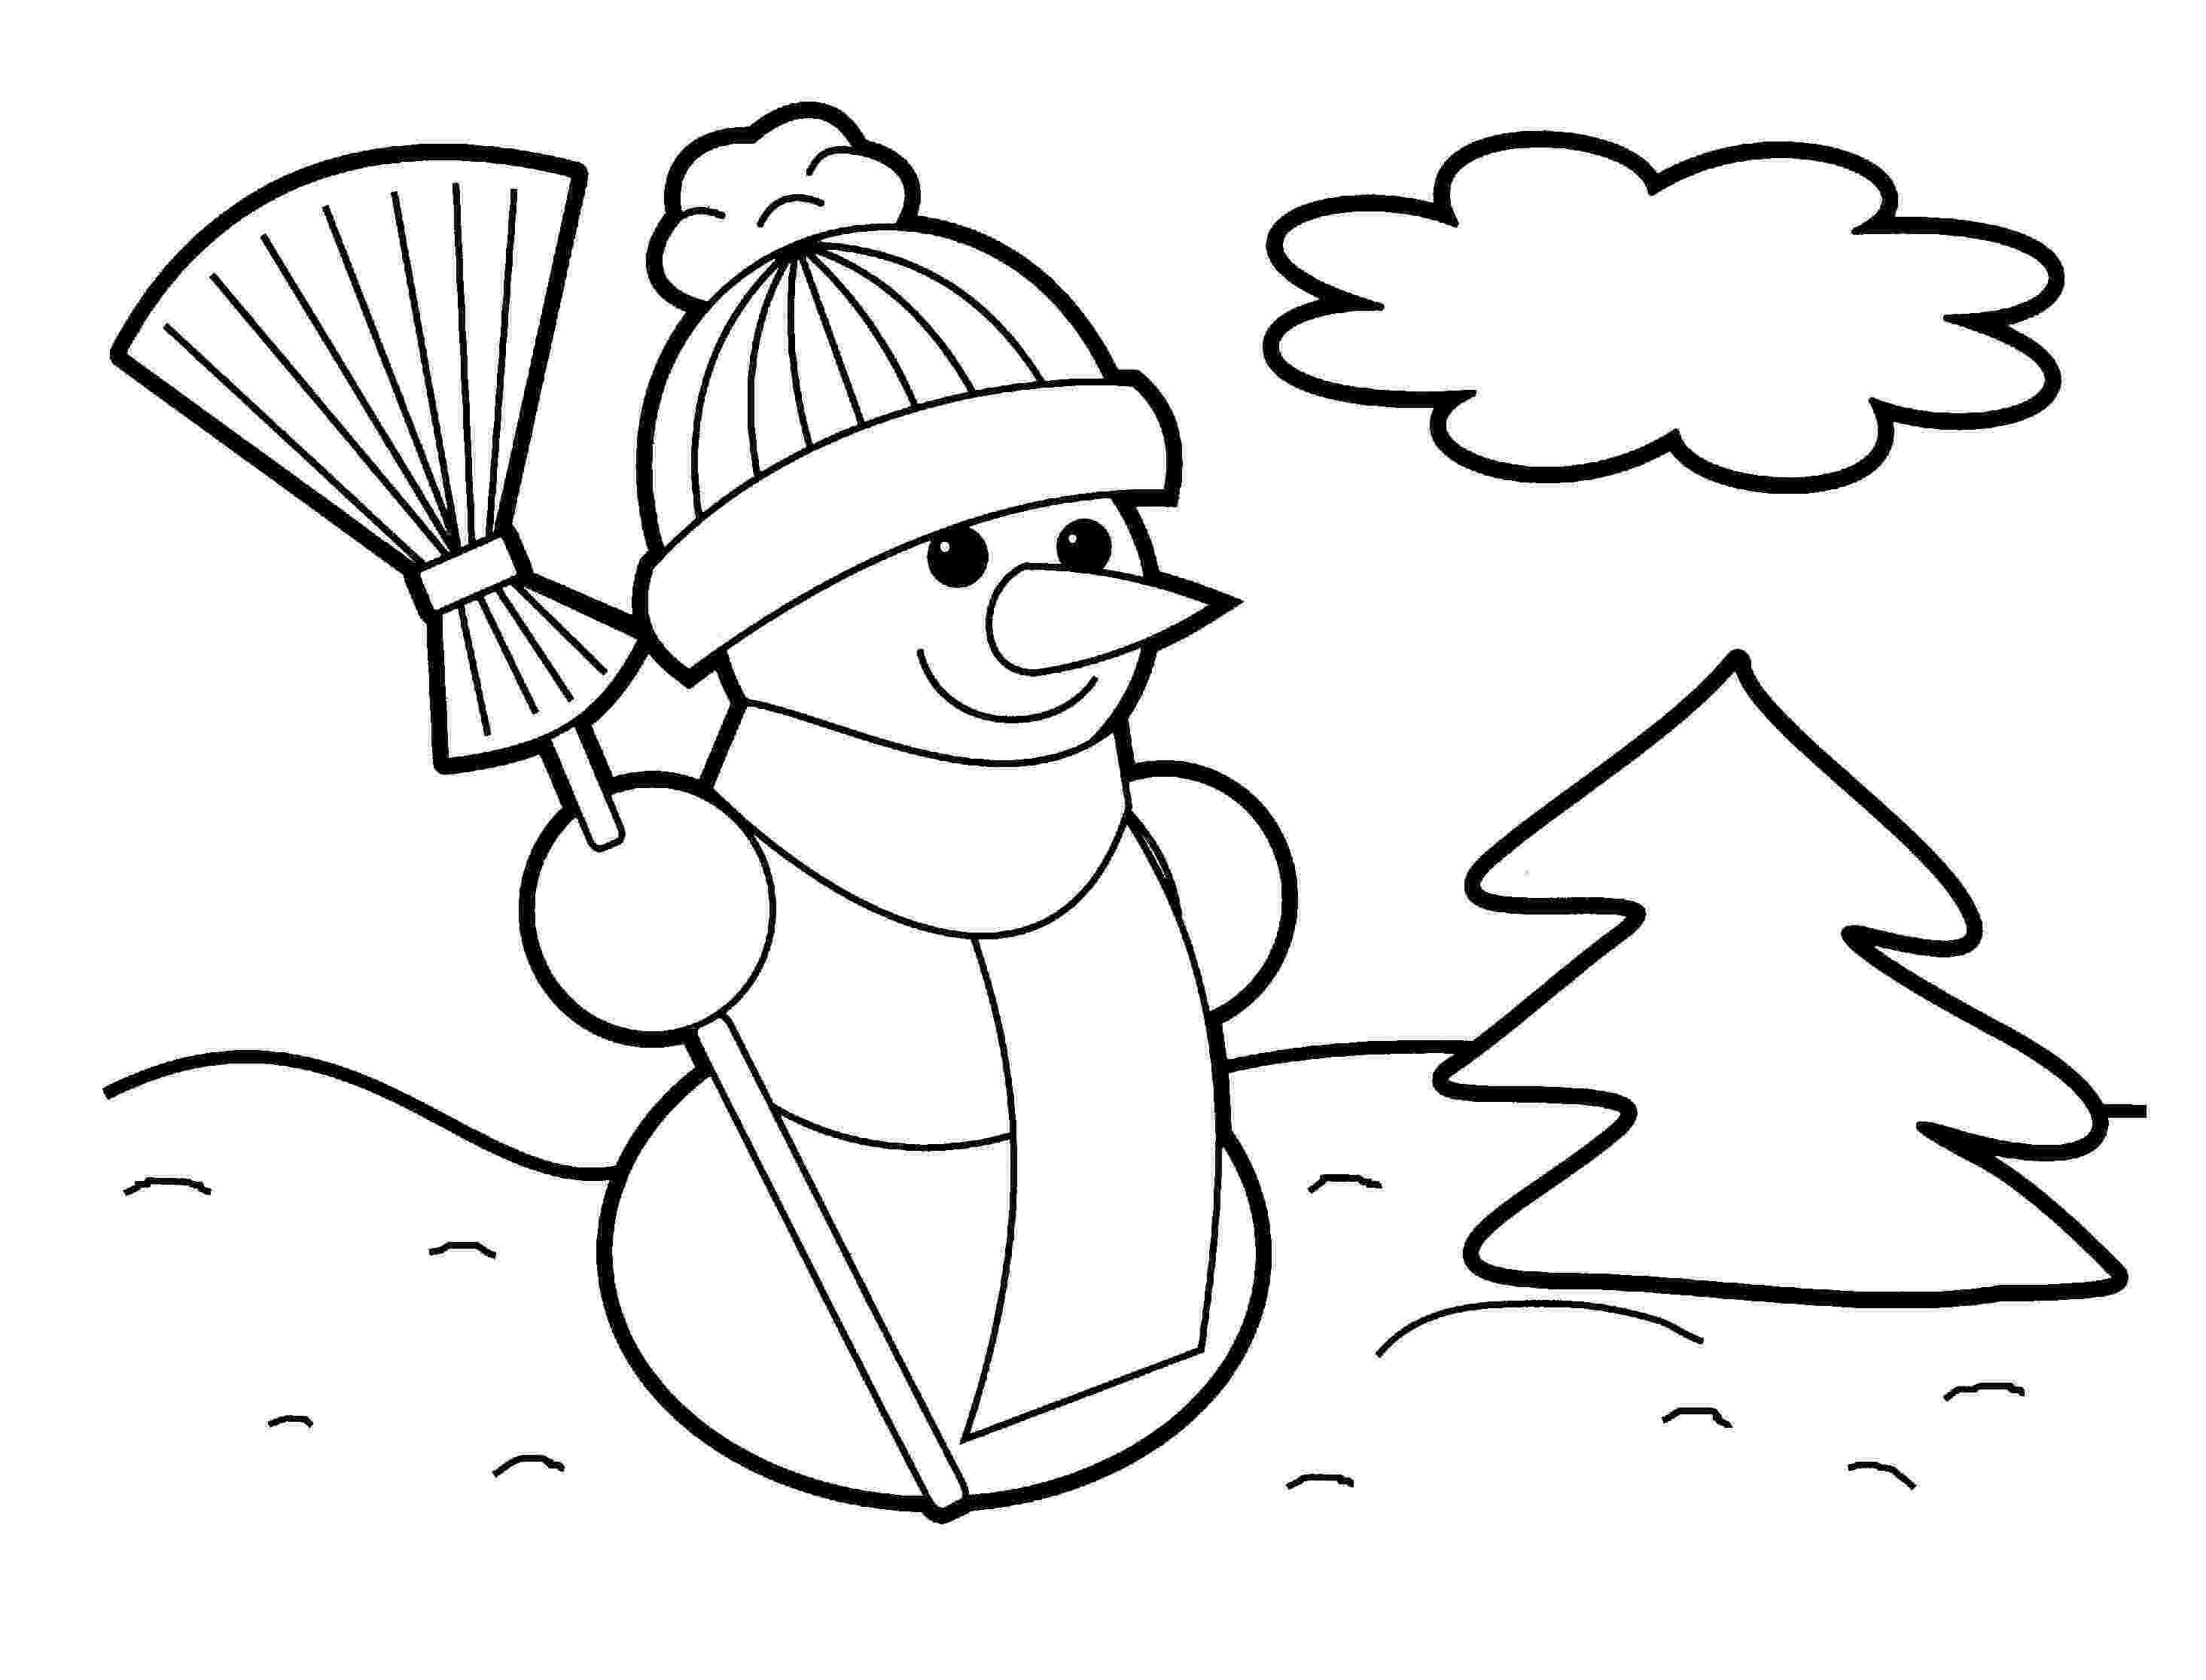 christmas presents coloring pages presents coloring pages best coloring pages for kids coloring presents christmas pages